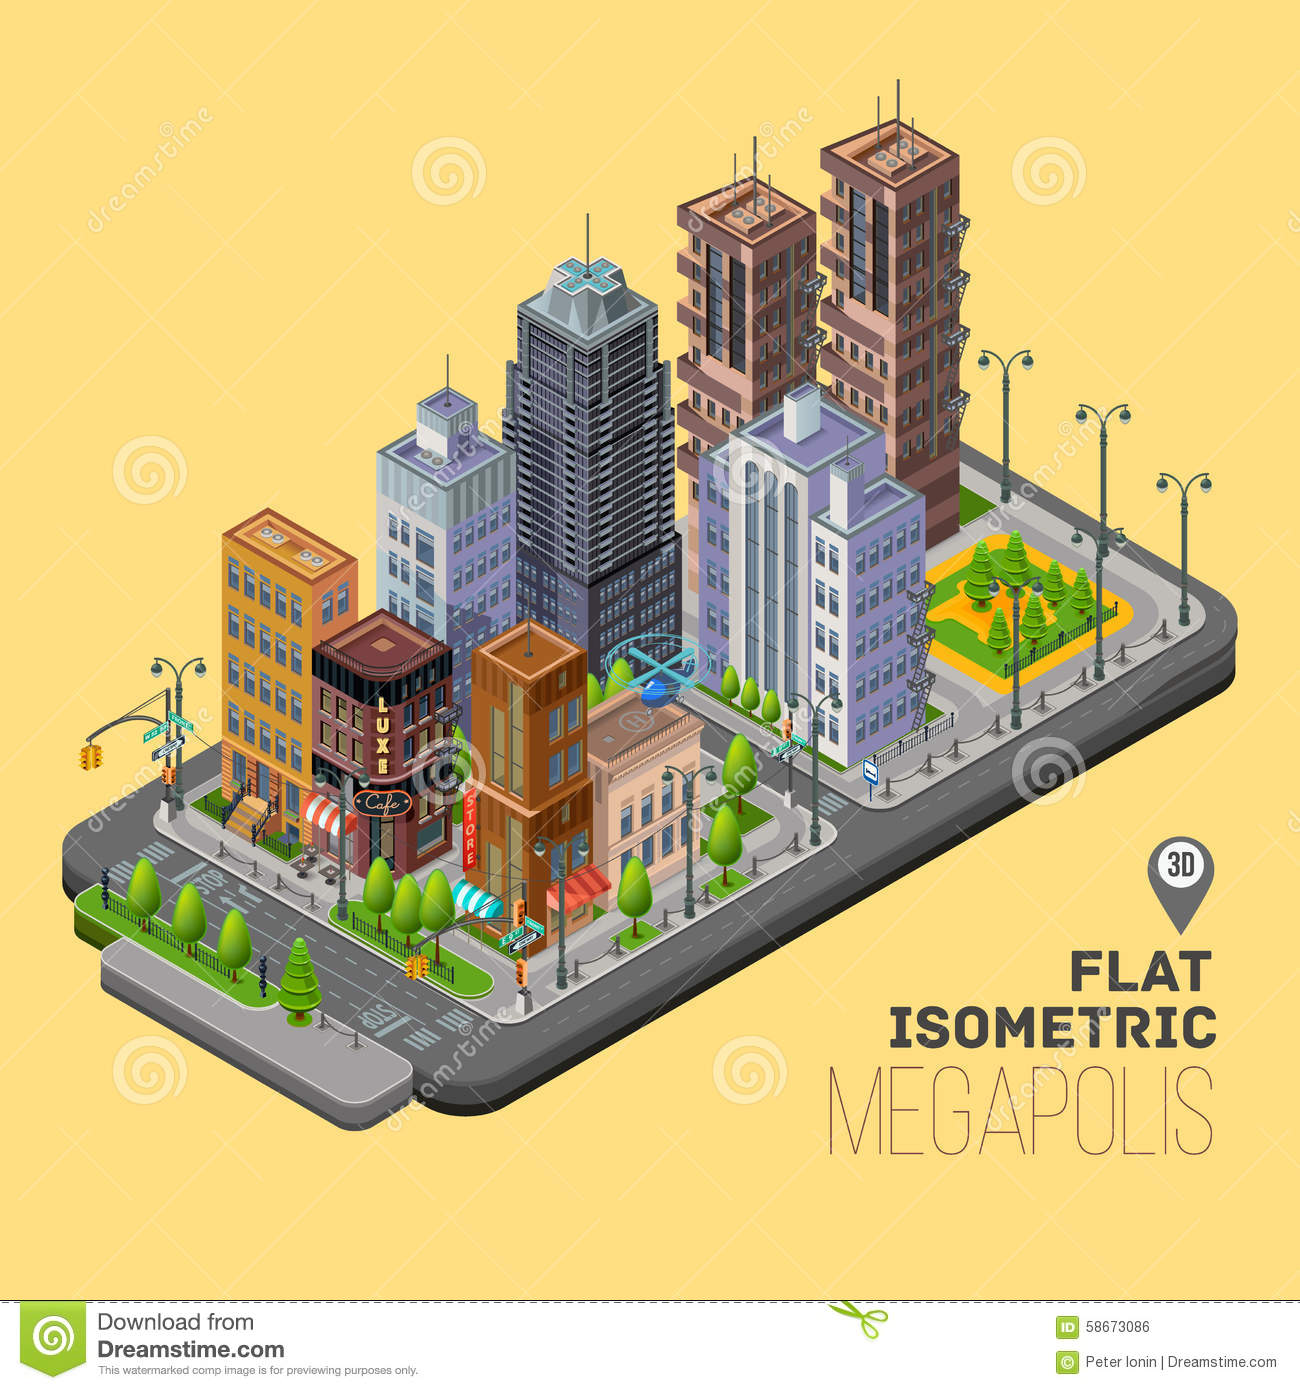 More similar stock images of 3d landscape with fall tree - Isometric City Megapolis Concept With 3d Vector Royalty Free Stock Image